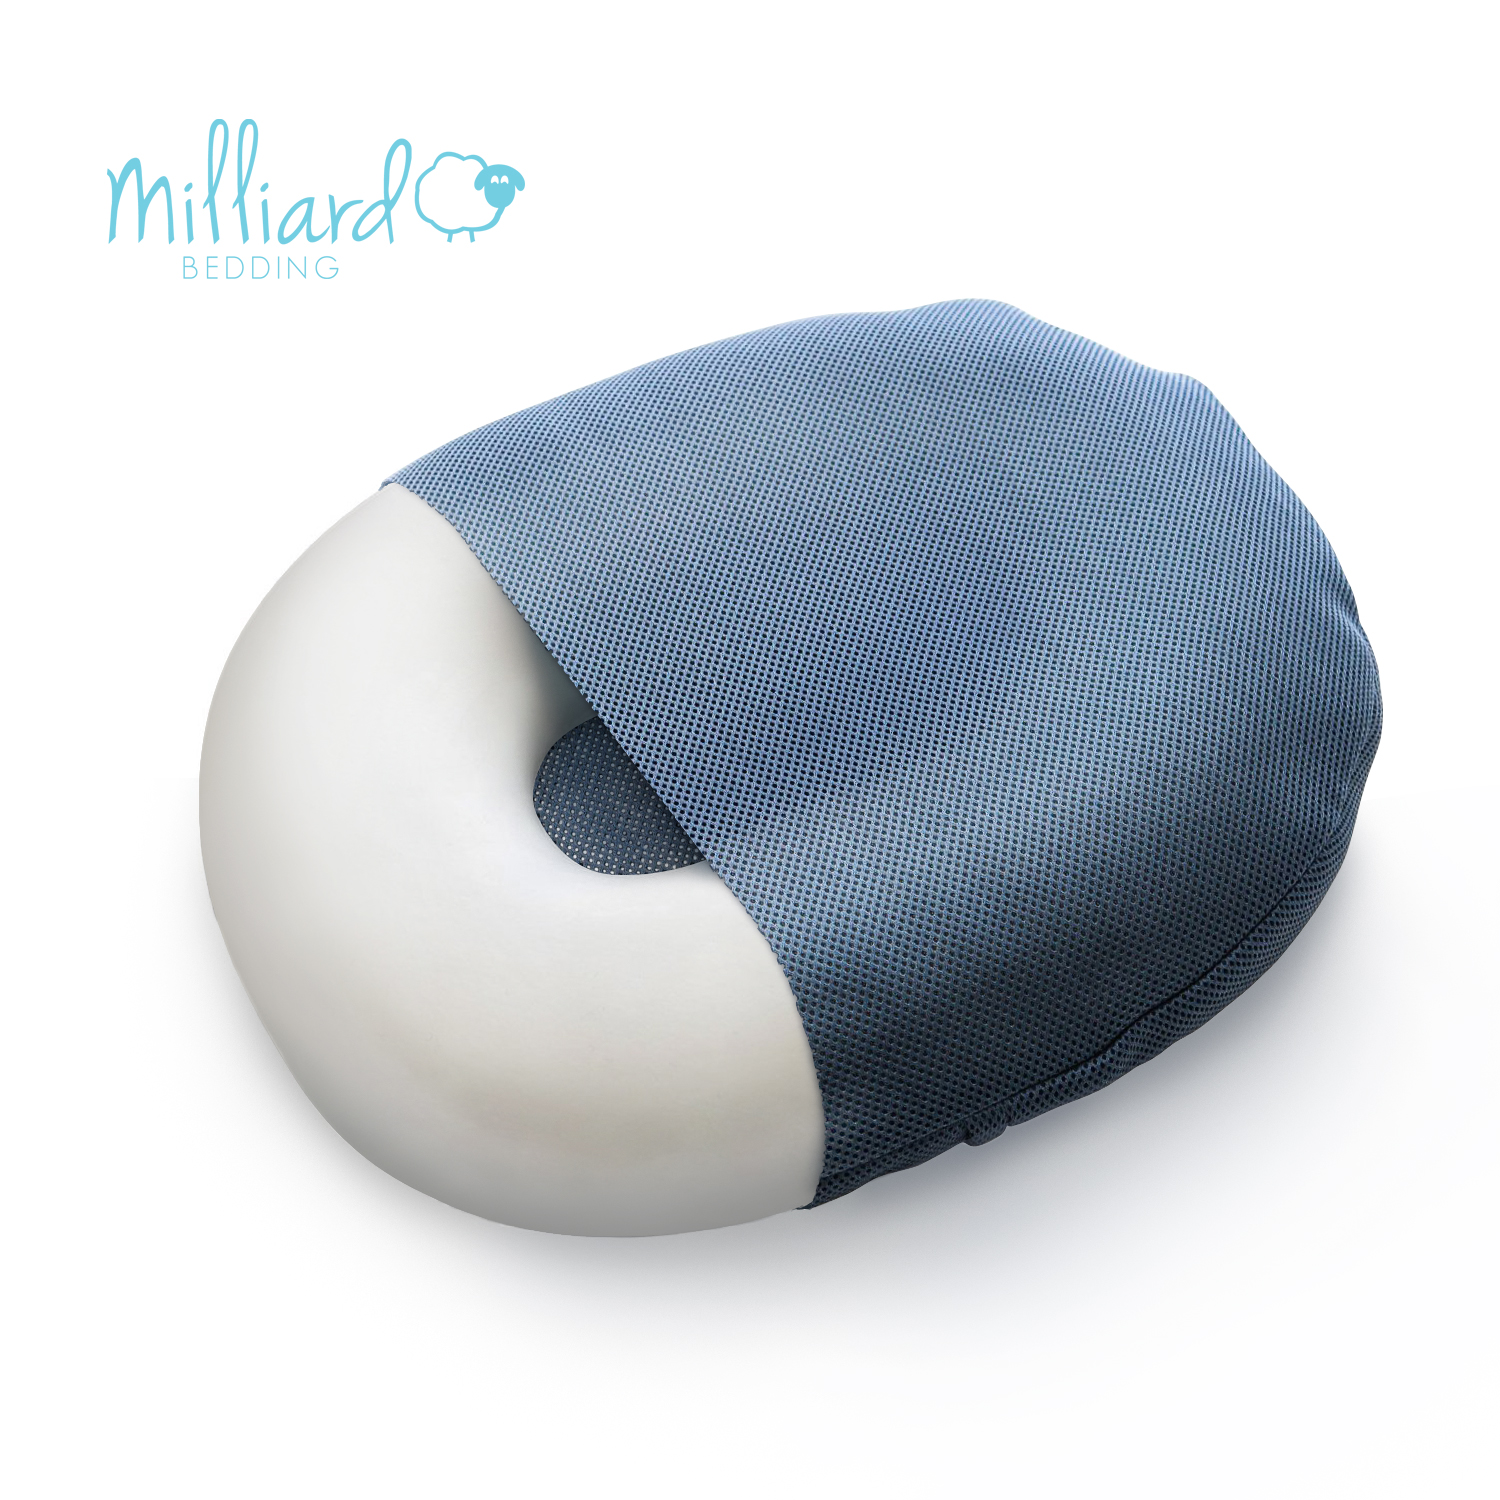 """Milliard Foam Donut Cushion Orthopedic Ring Pillow with Removable Cover, Large, 20x15"""" For Hemorrhoid, Coccyx, Sciatic Nerve, Pregnancy and Tailbone Pain"""